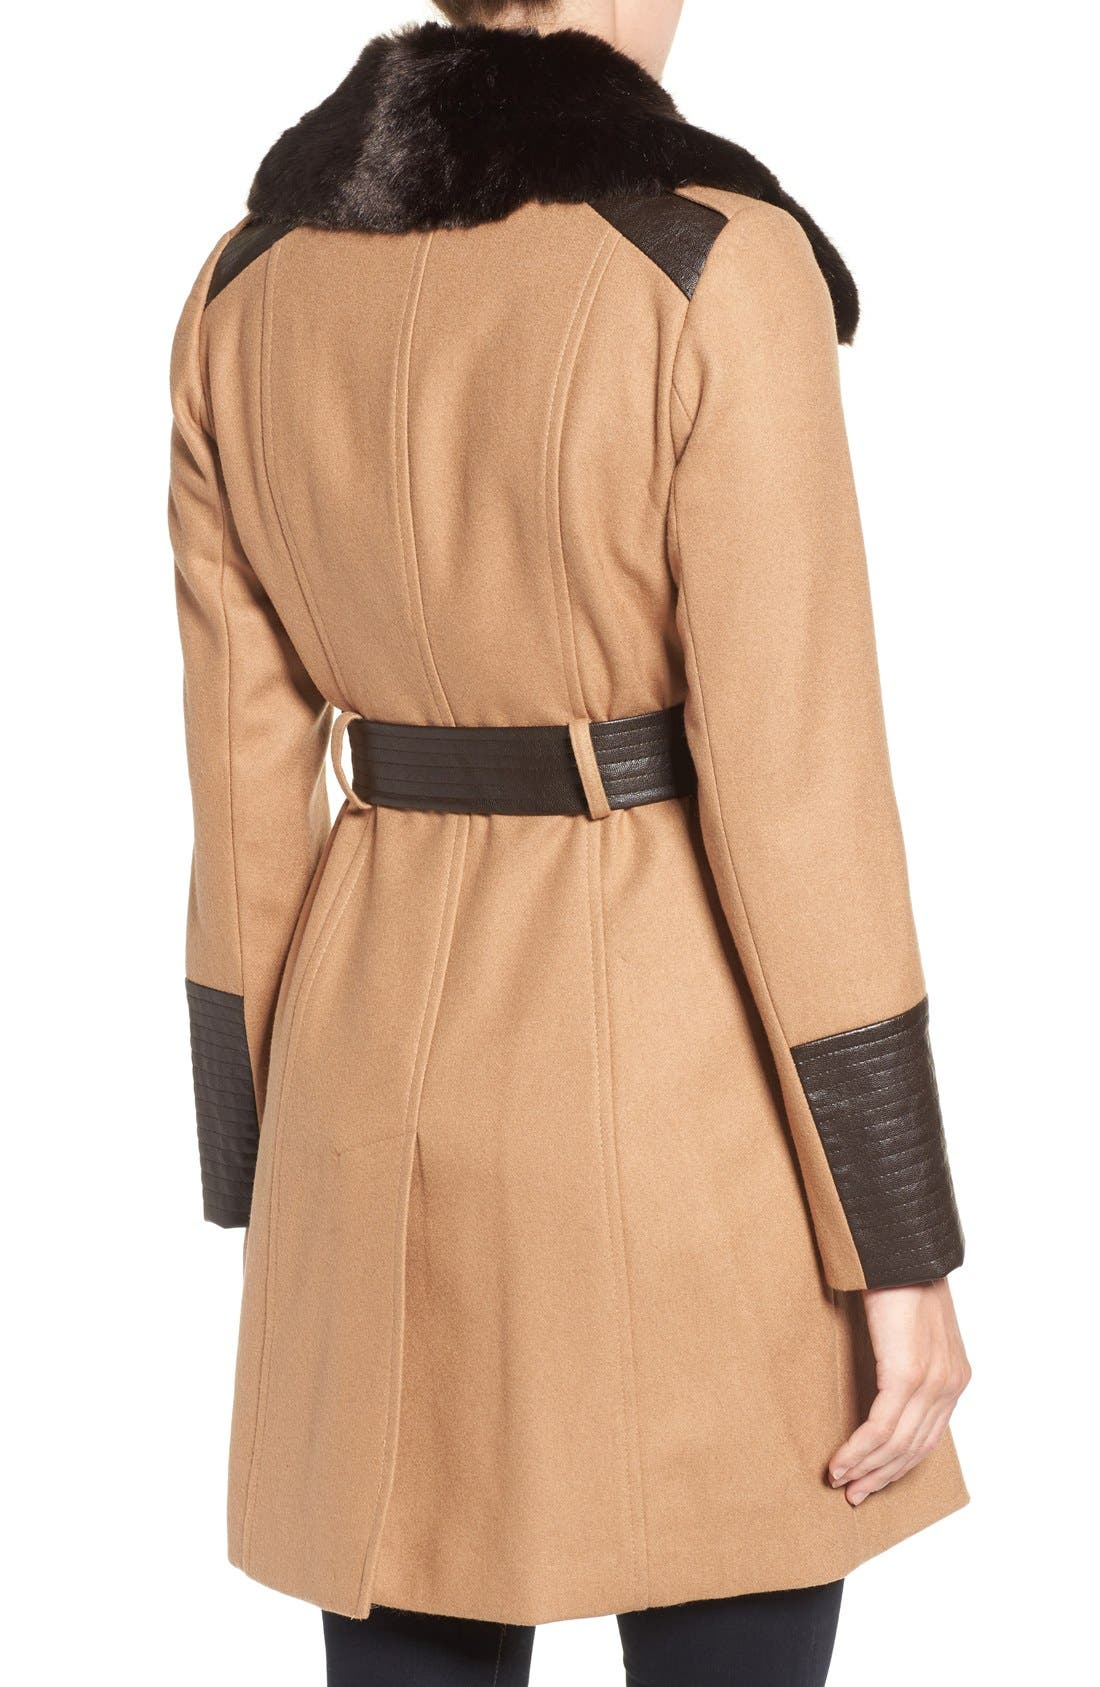 Alternate Image 2  - Via Spiga Faux Leather & Faux Fur Trim Belted Wool Blend Coat